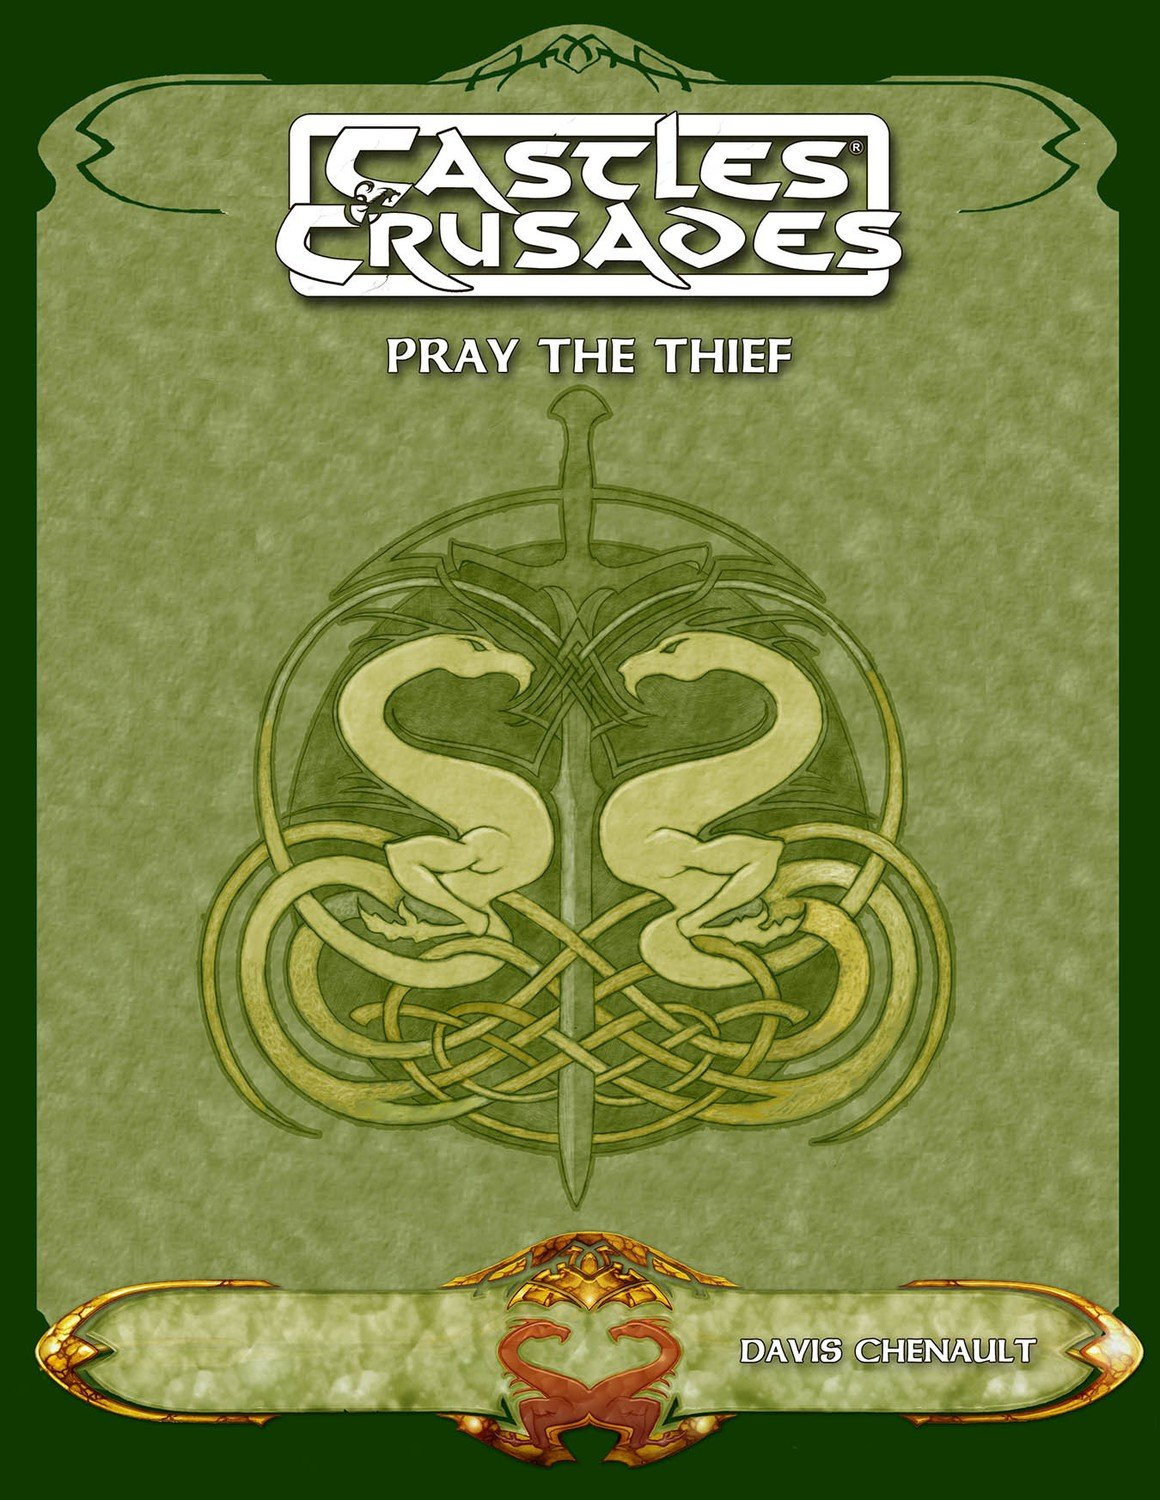 Castles & Crusades Pray the Thief - Digital